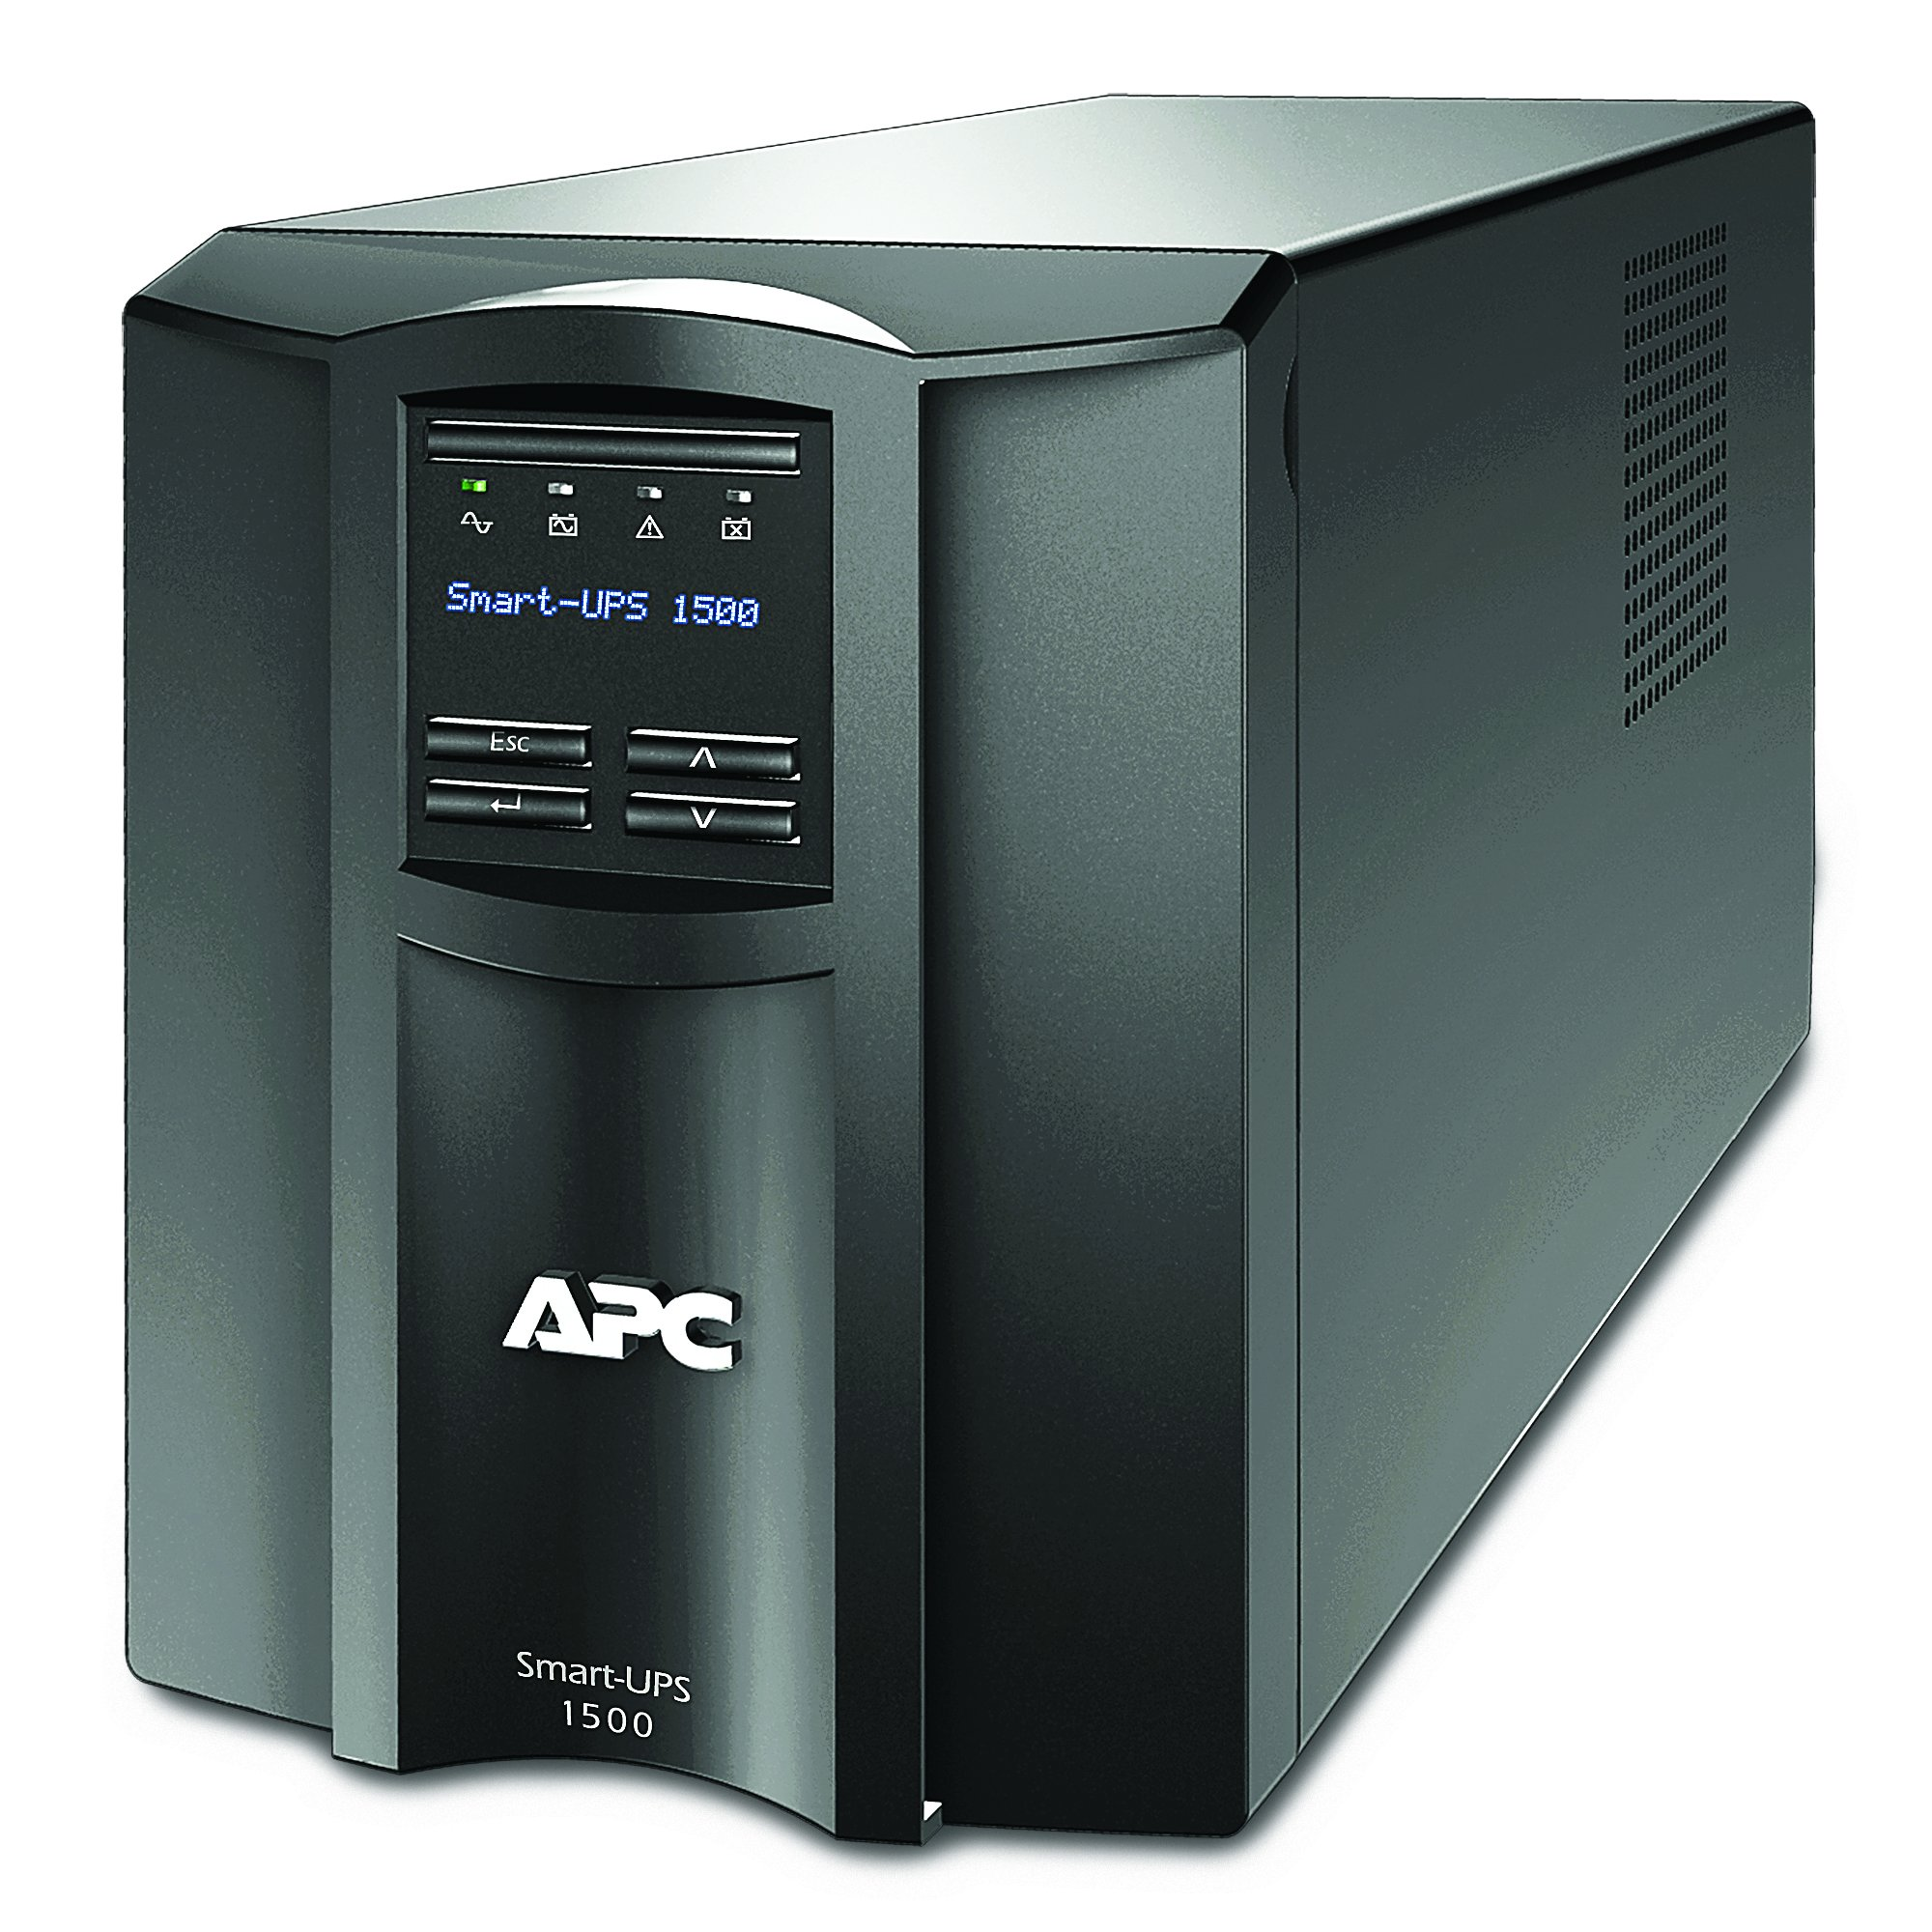 APC Smart-UPS with SmartConnect Remote Monitoring App, 1500VA UPS Pure Sine Battery Backup & Surge Protection with Alphanumeric LCD (SMT1500C) by APC